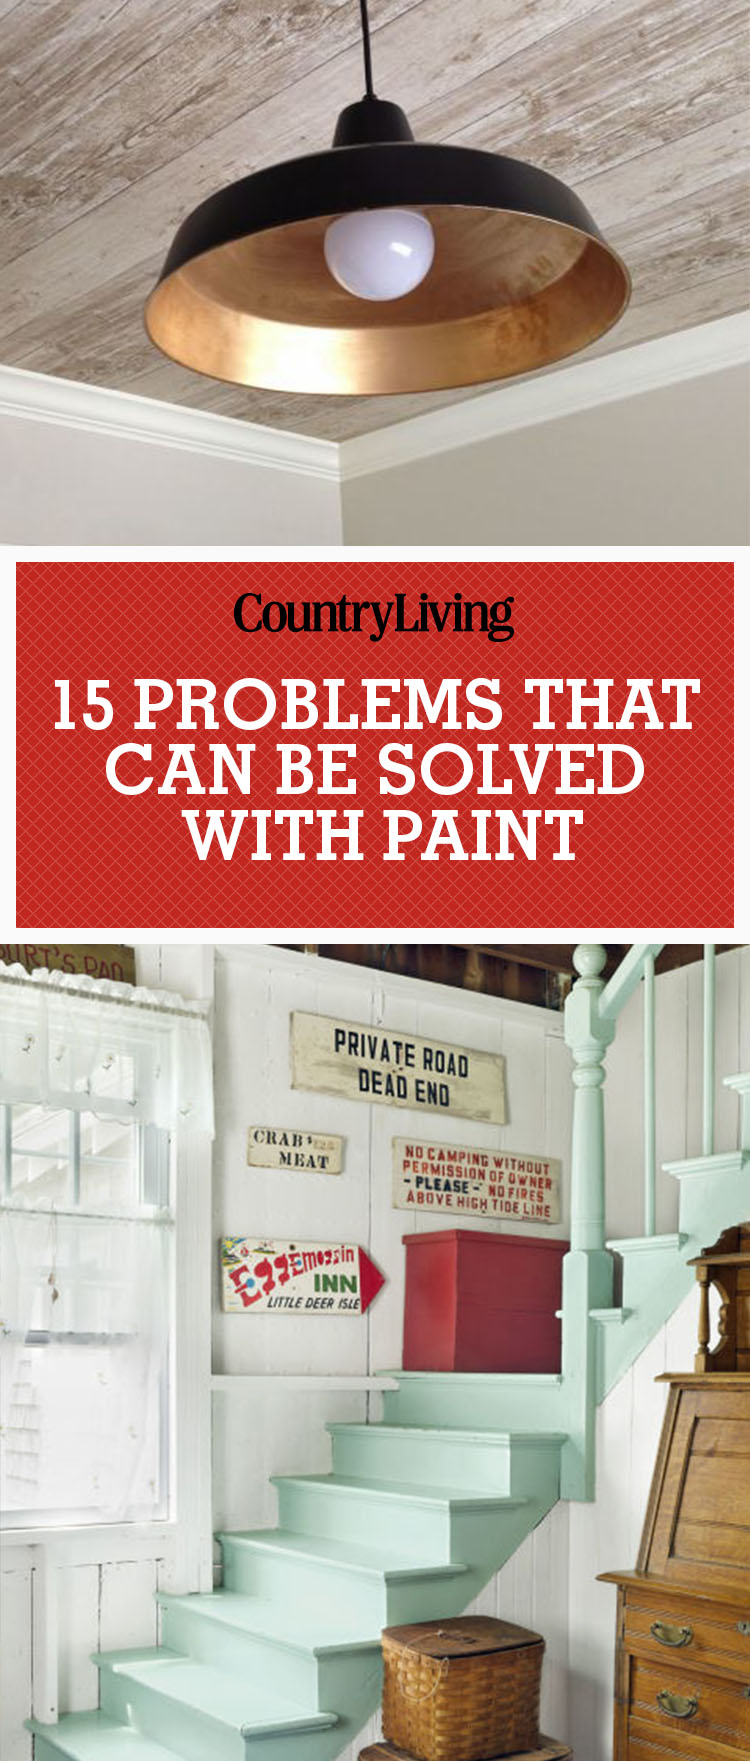 Problems That Can Be Solved With Paint Best Ways To Use Paint In Your Home